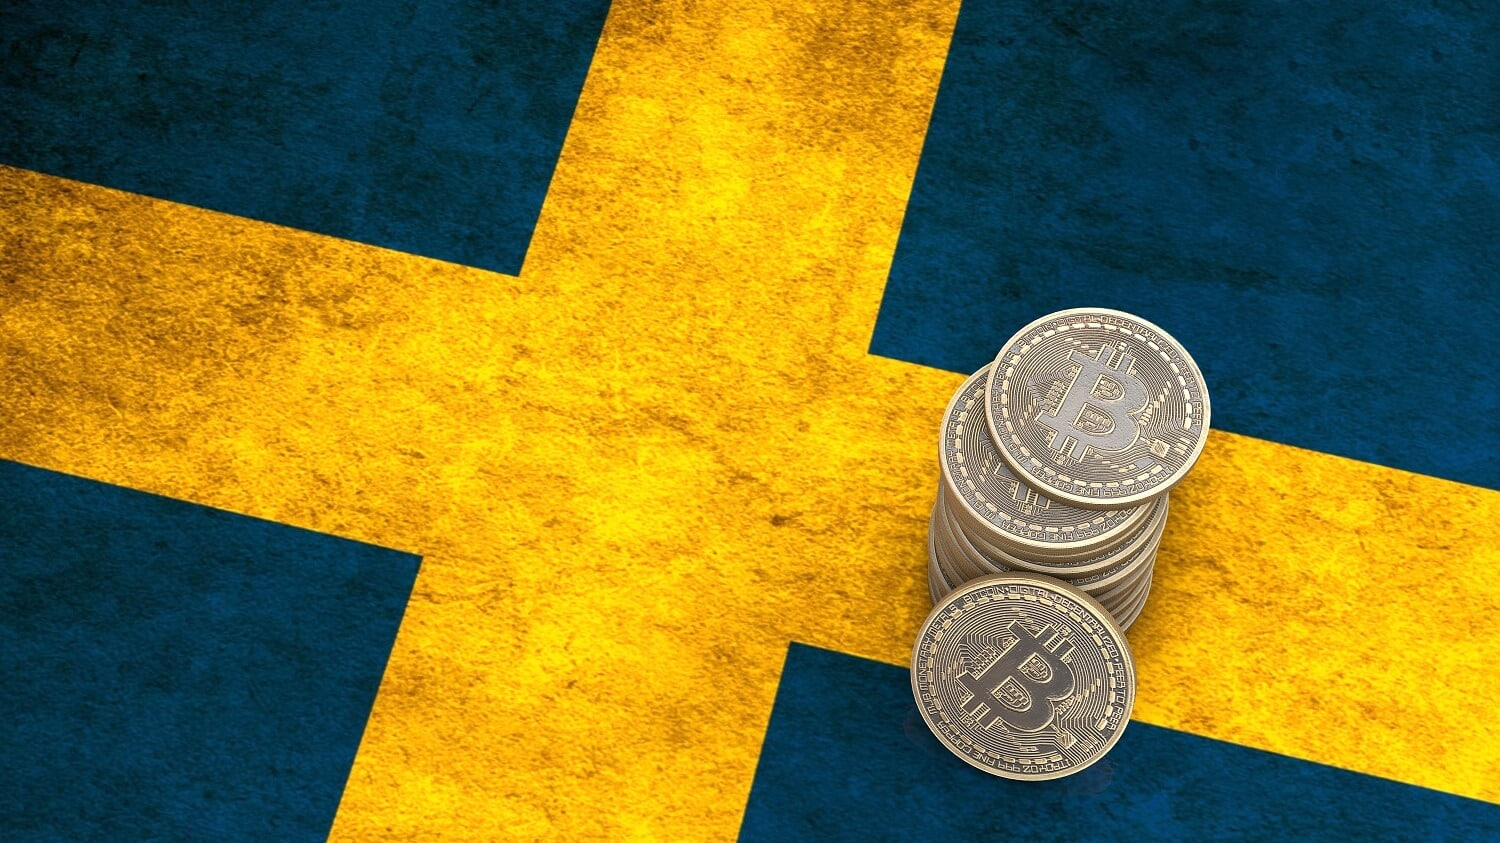 Sweden's Central Bank Accelerates to Implement National Digital Currency